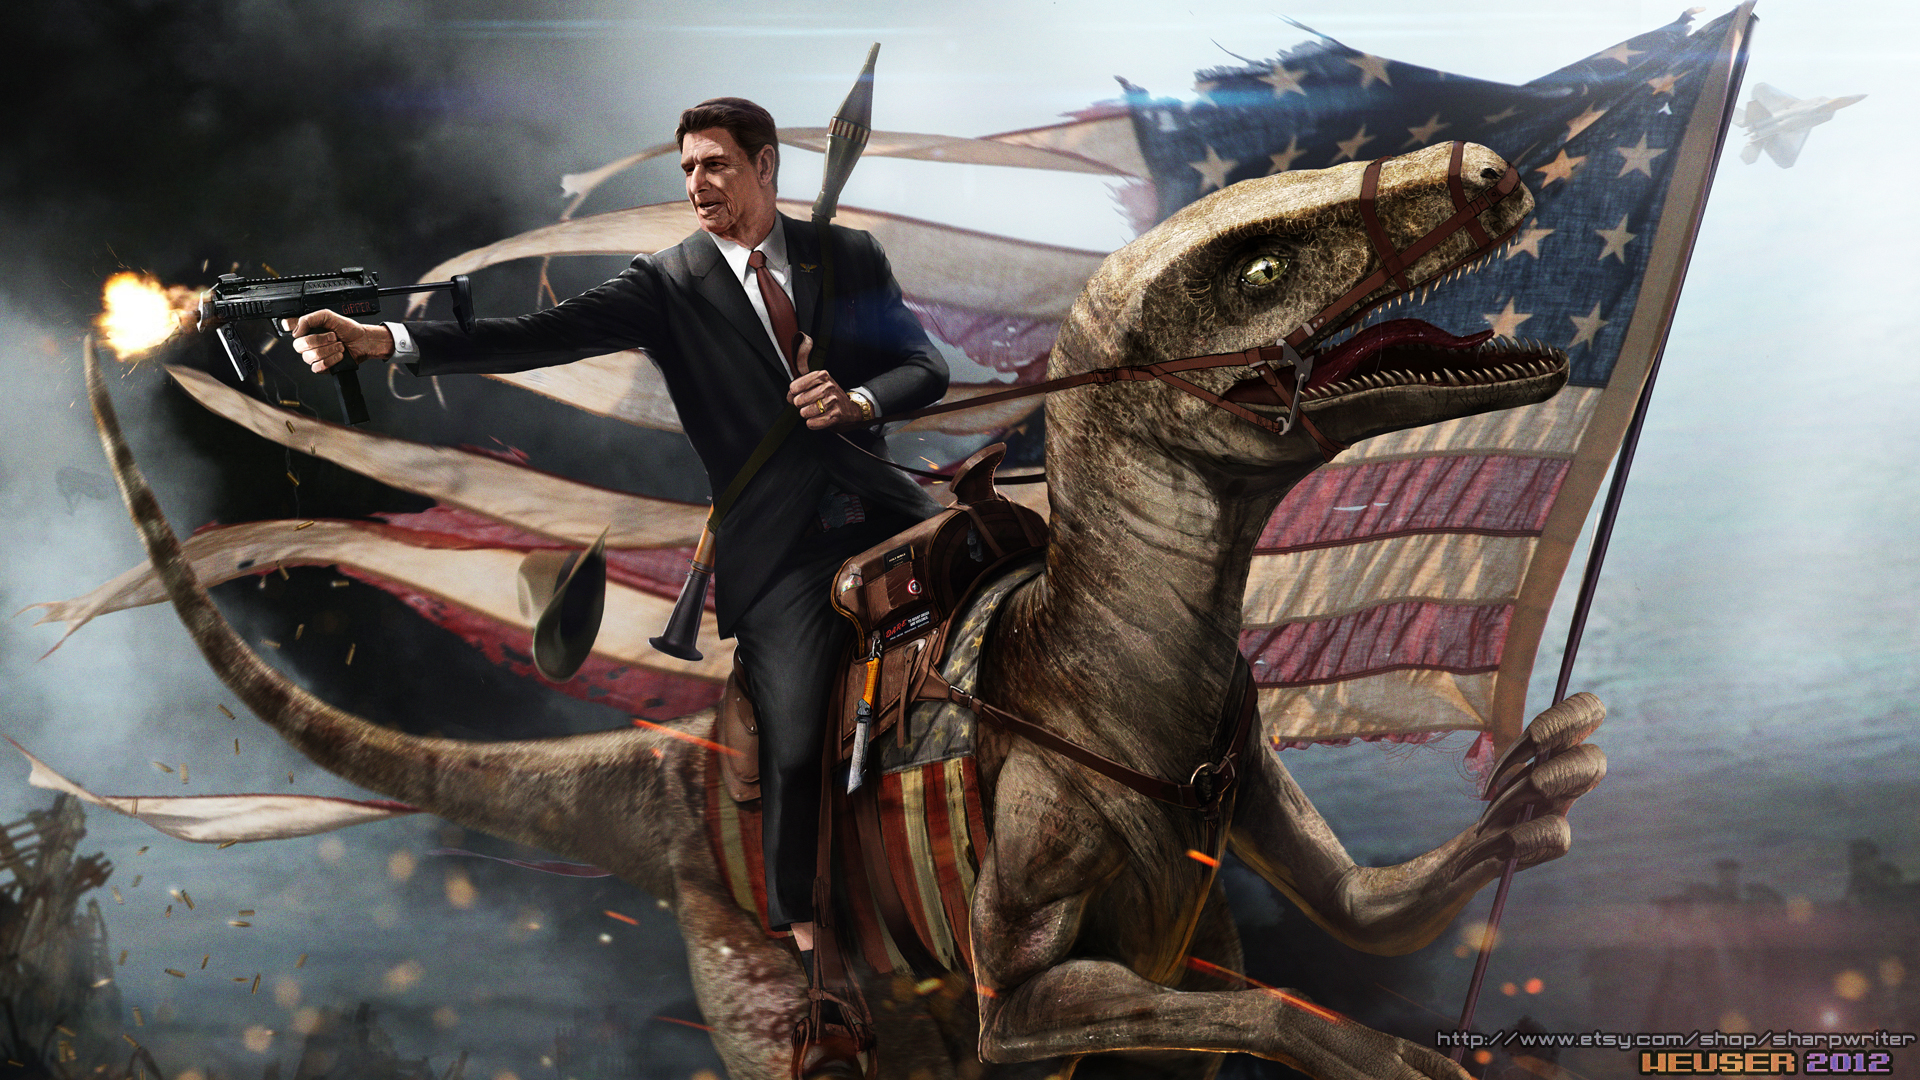 Ronald Reagan Riding a Velociraptor by SharpWriter Ronald Reagan Riding a Velociraptor by SharpWriter